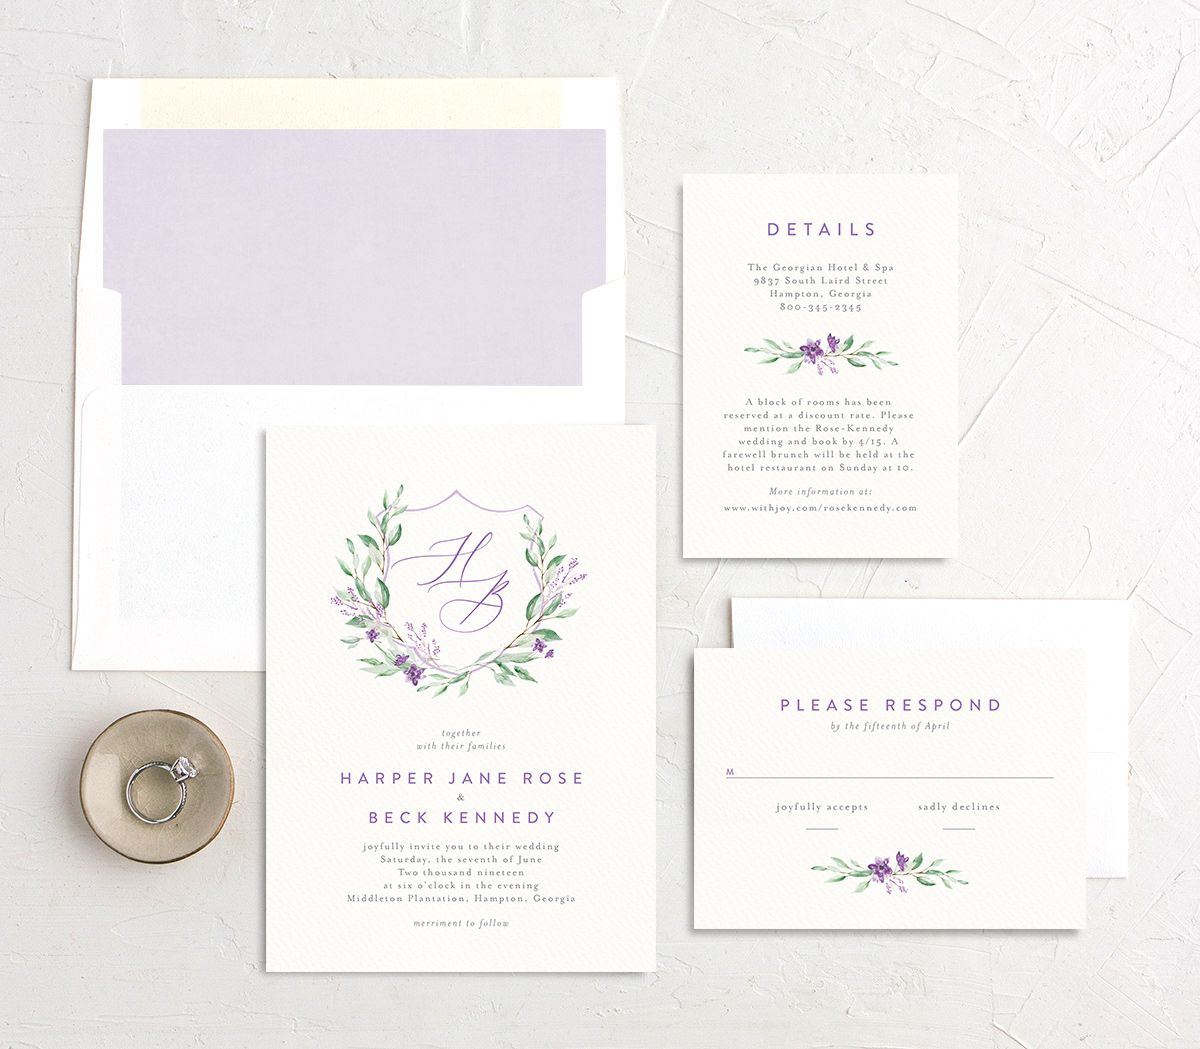 watercolor crest wedding invitation stationery suite in purple